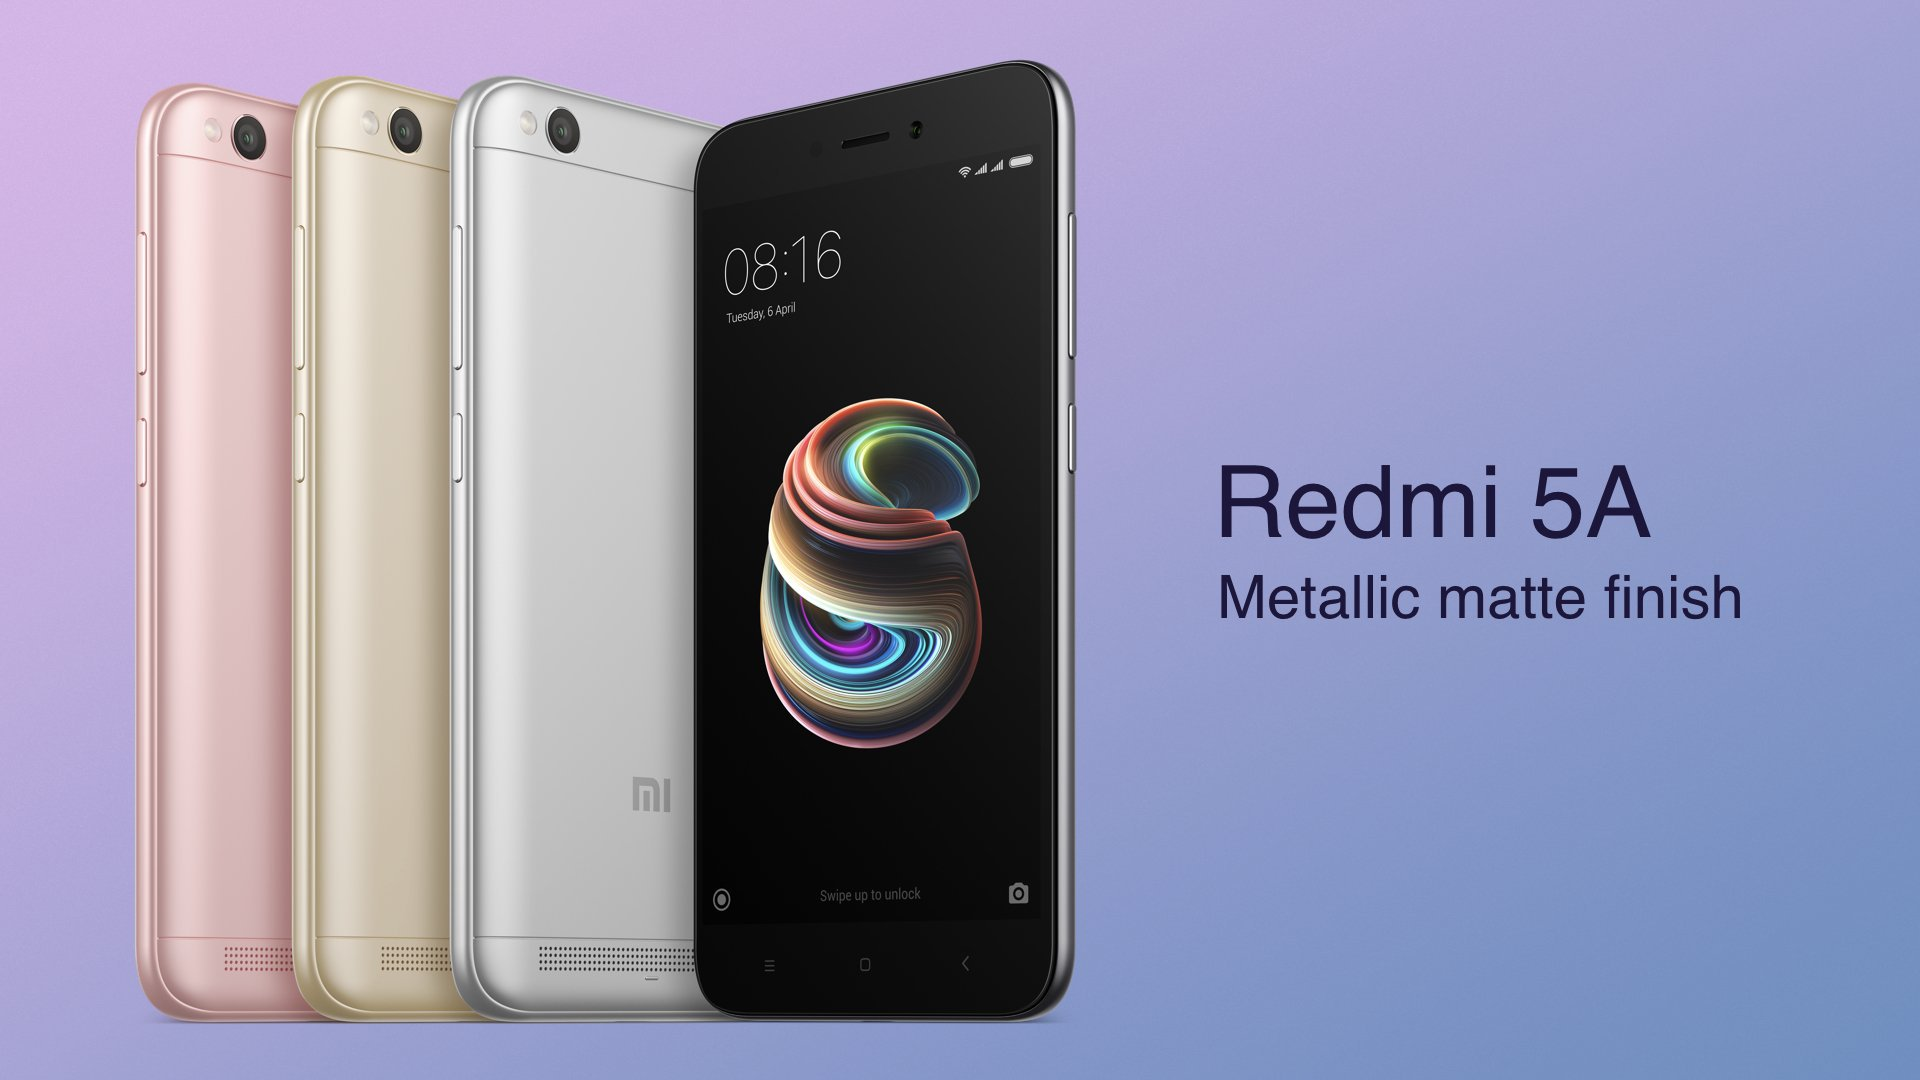 Xiaomi Redmi 5A launched in India, pricing starts at Rs. 4,999 2